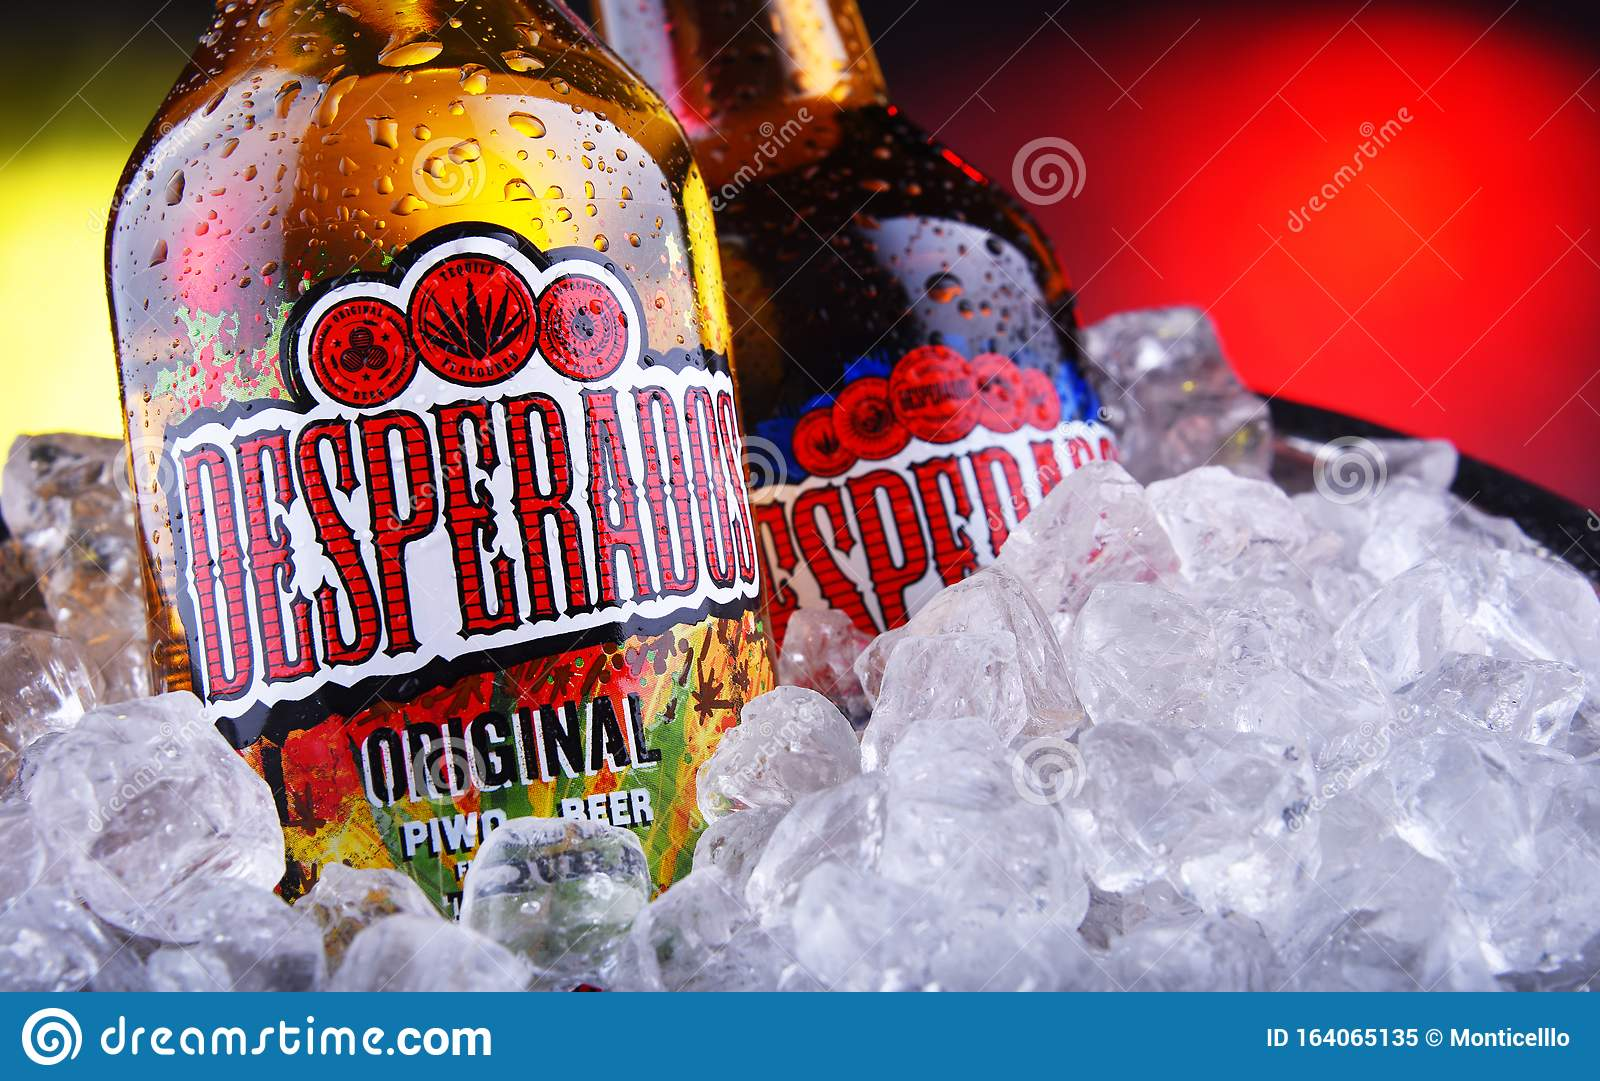 Bottles Of Desperados Beer In Bucket With Crushed Ice Editorial Image Image Of Alcohol Hrvatska 164065135